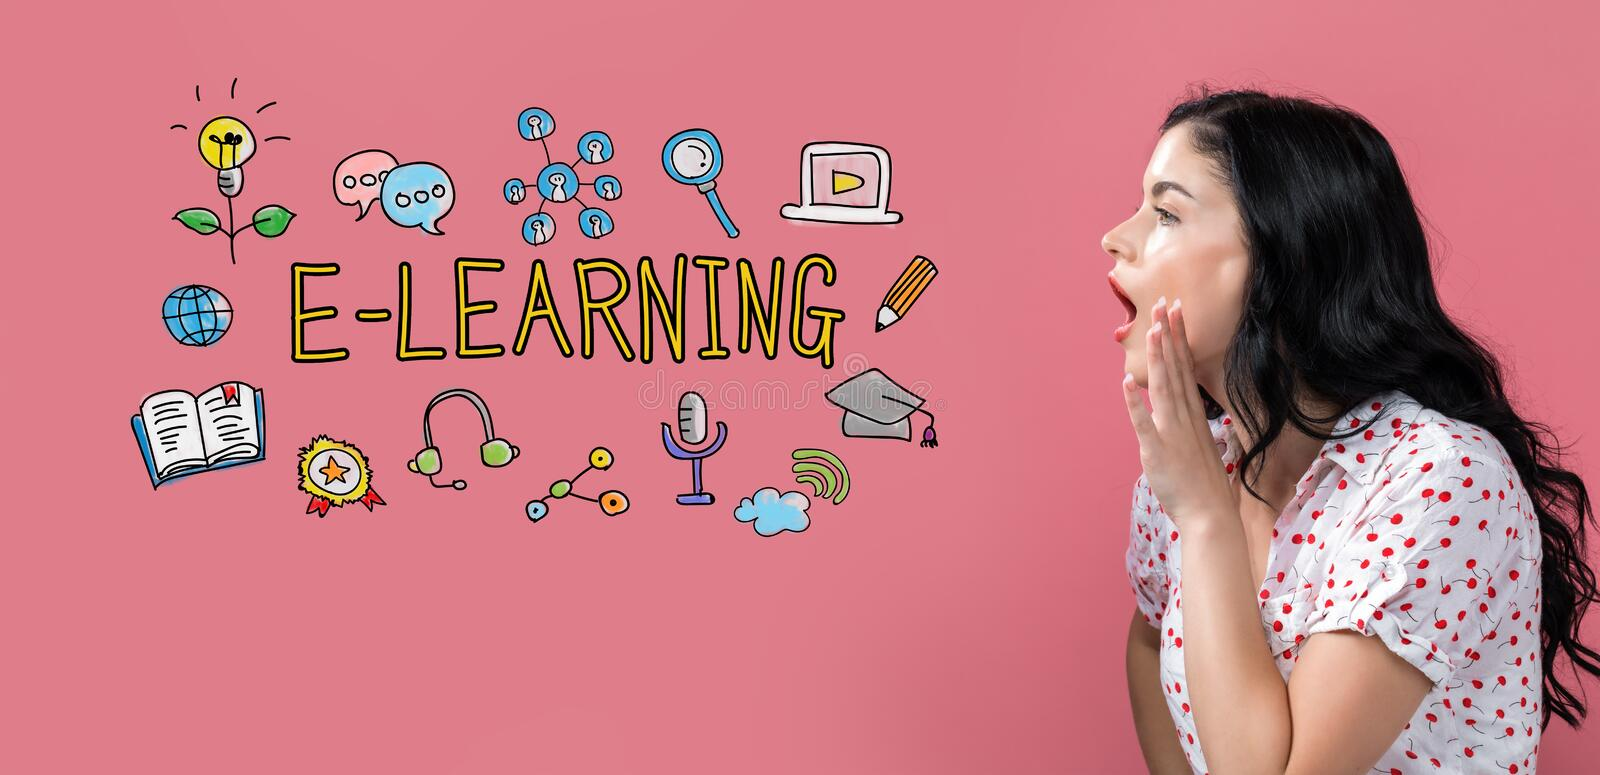 E-Learning with young woman speaking royalty free stock photo